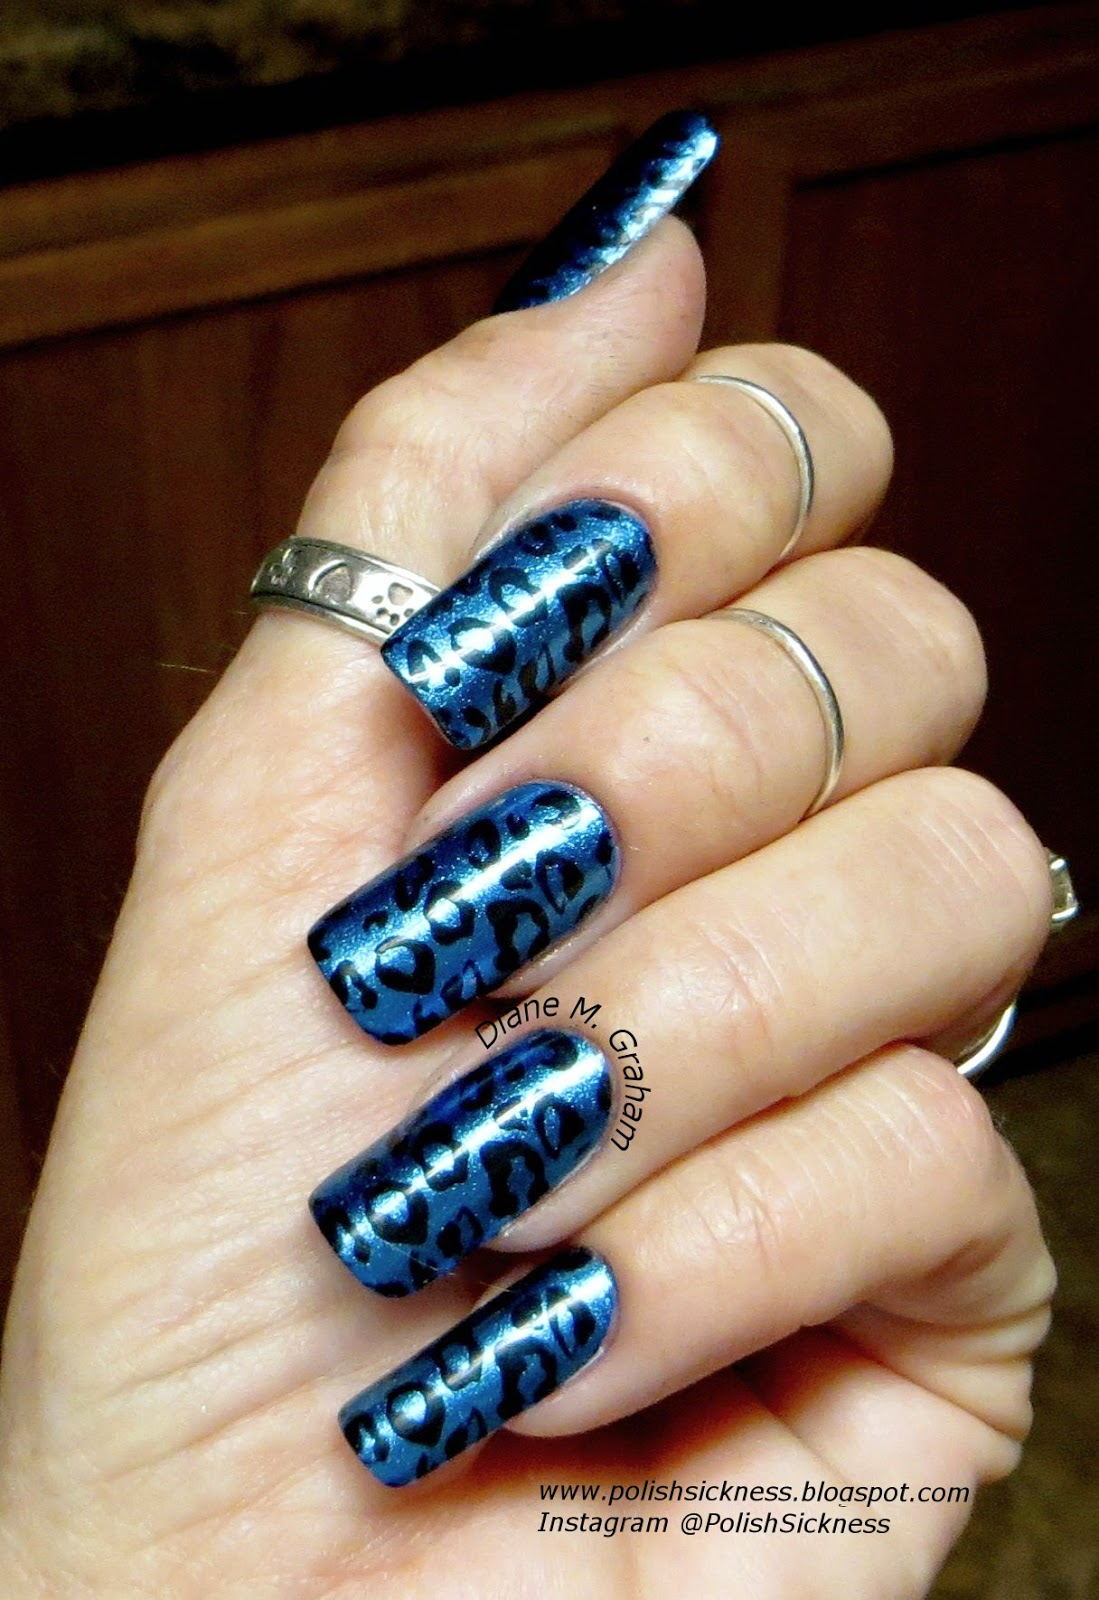 Orly Sweet Peacock, Bundle Monster BM XL08 stamp